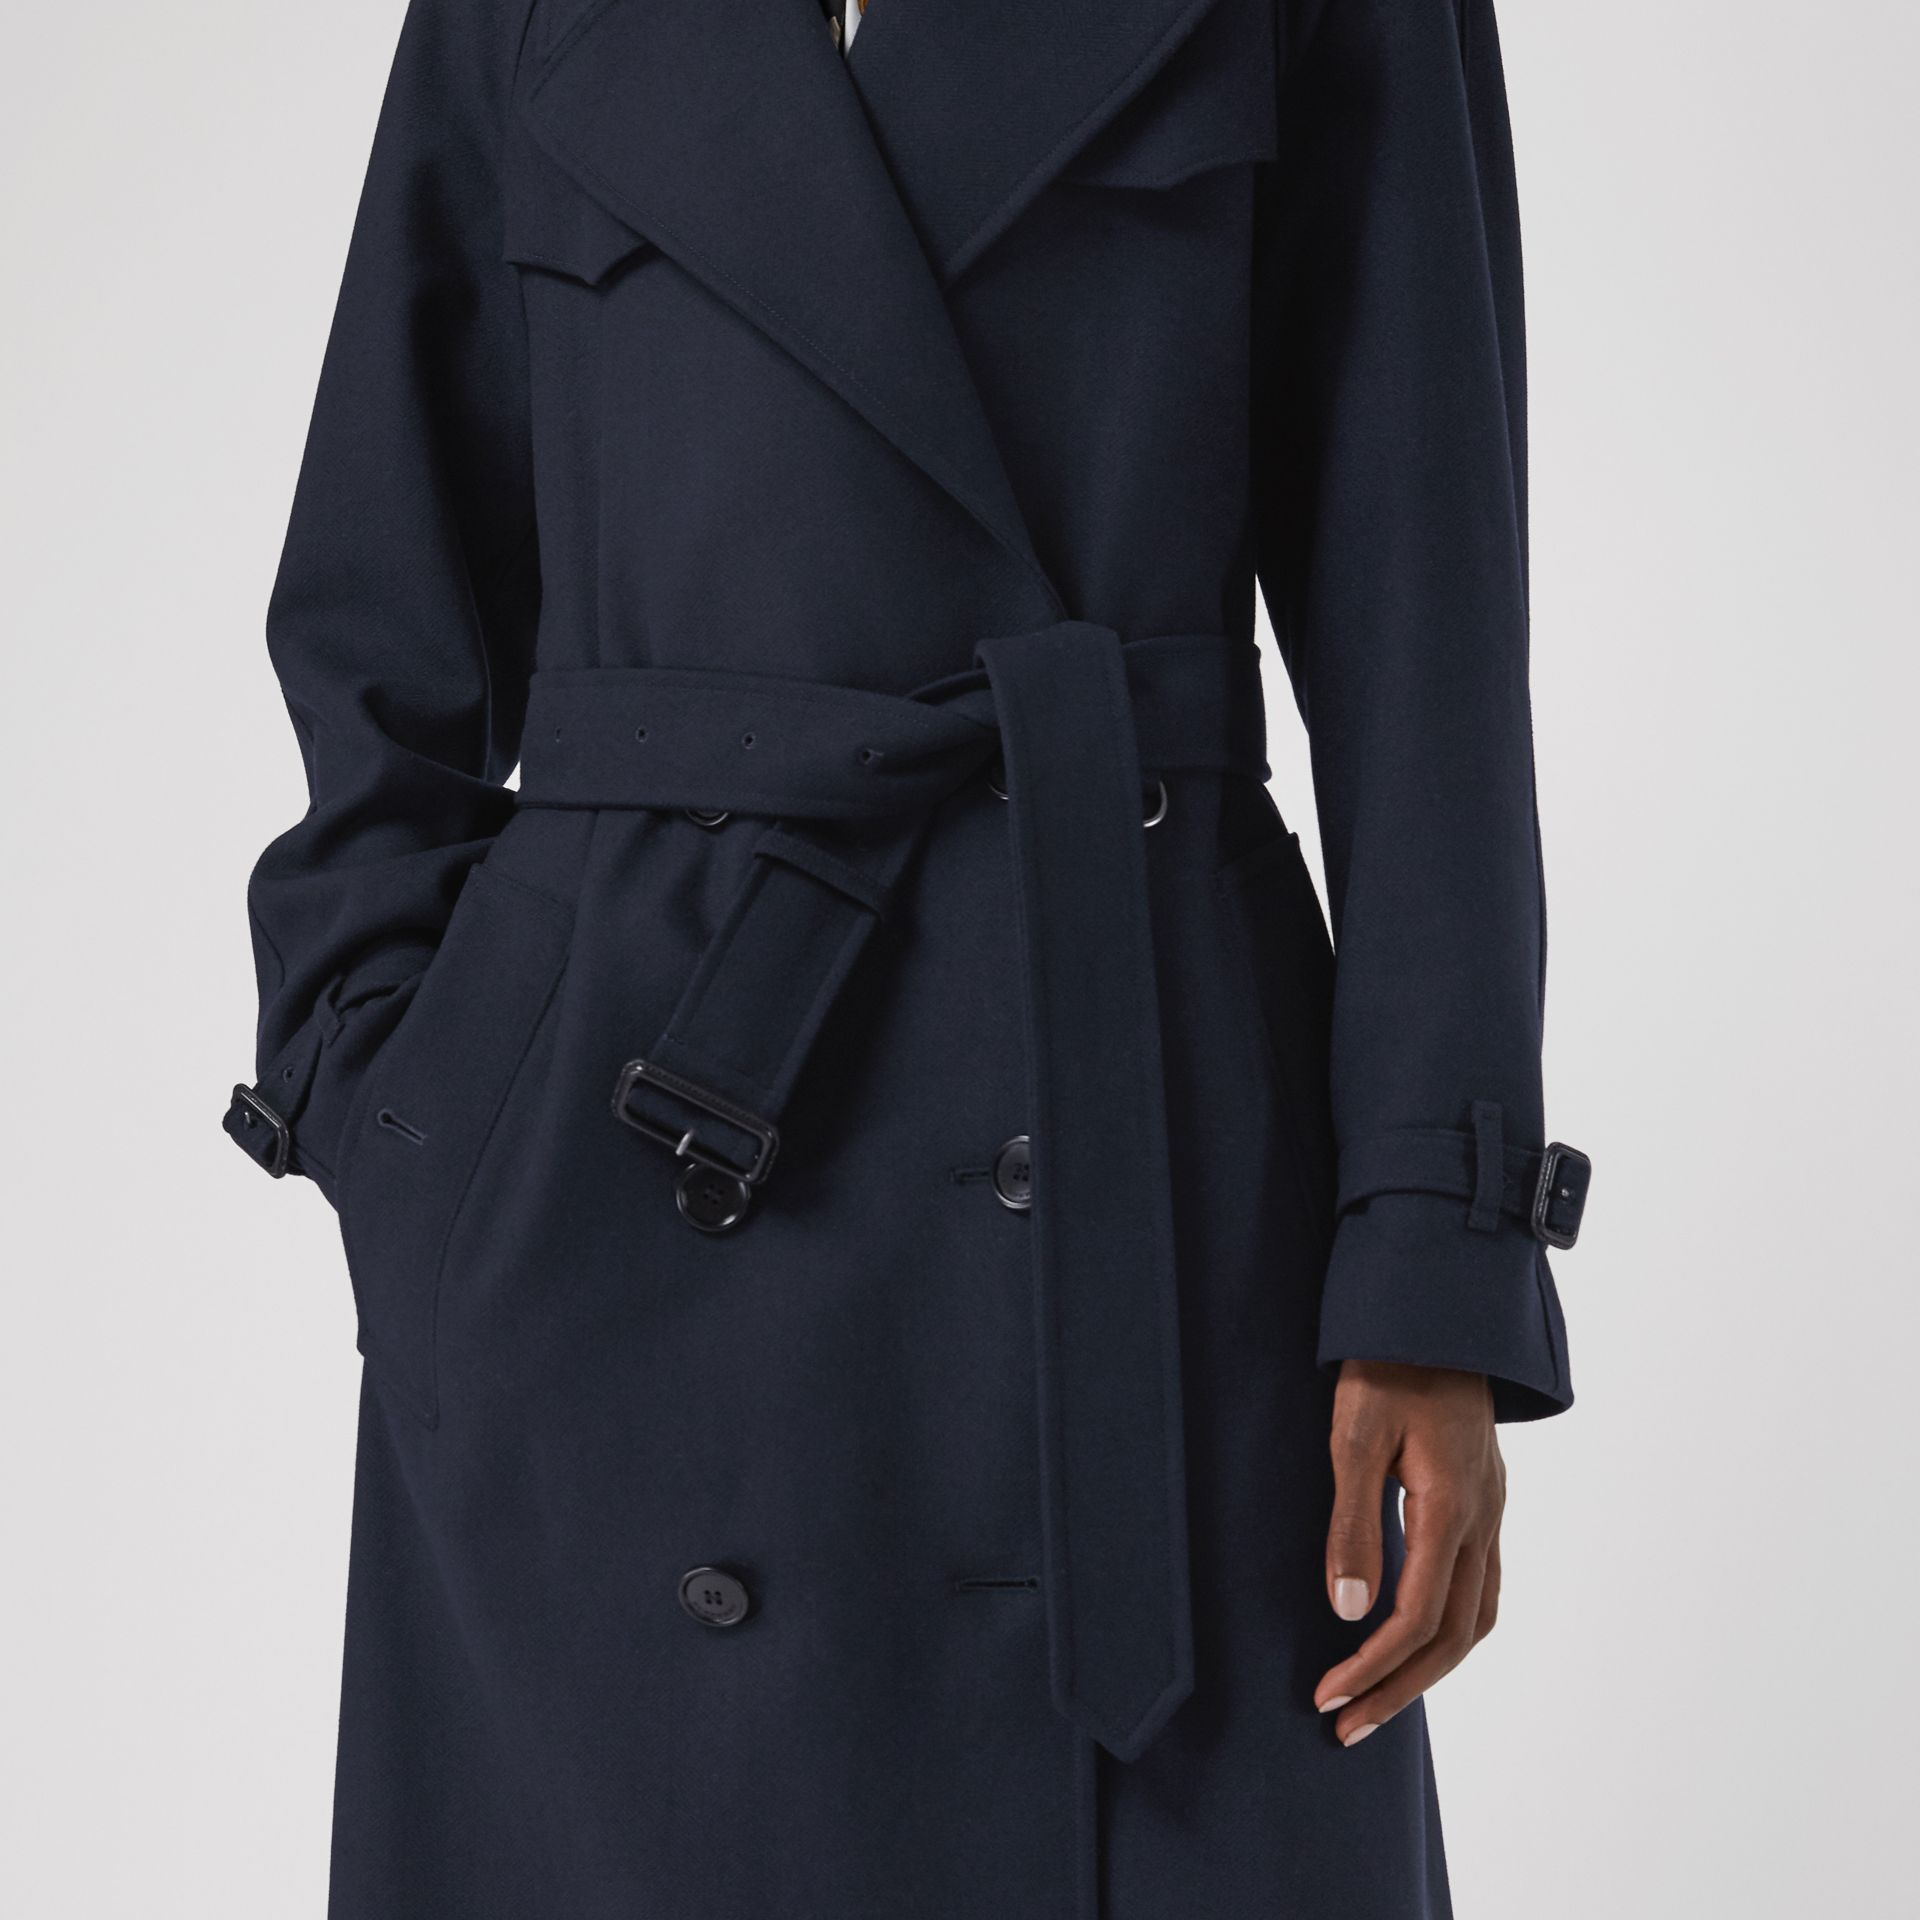 Herringbone Wool Blend Trench Coat in Navy - Women | Burberry - gallery image 4